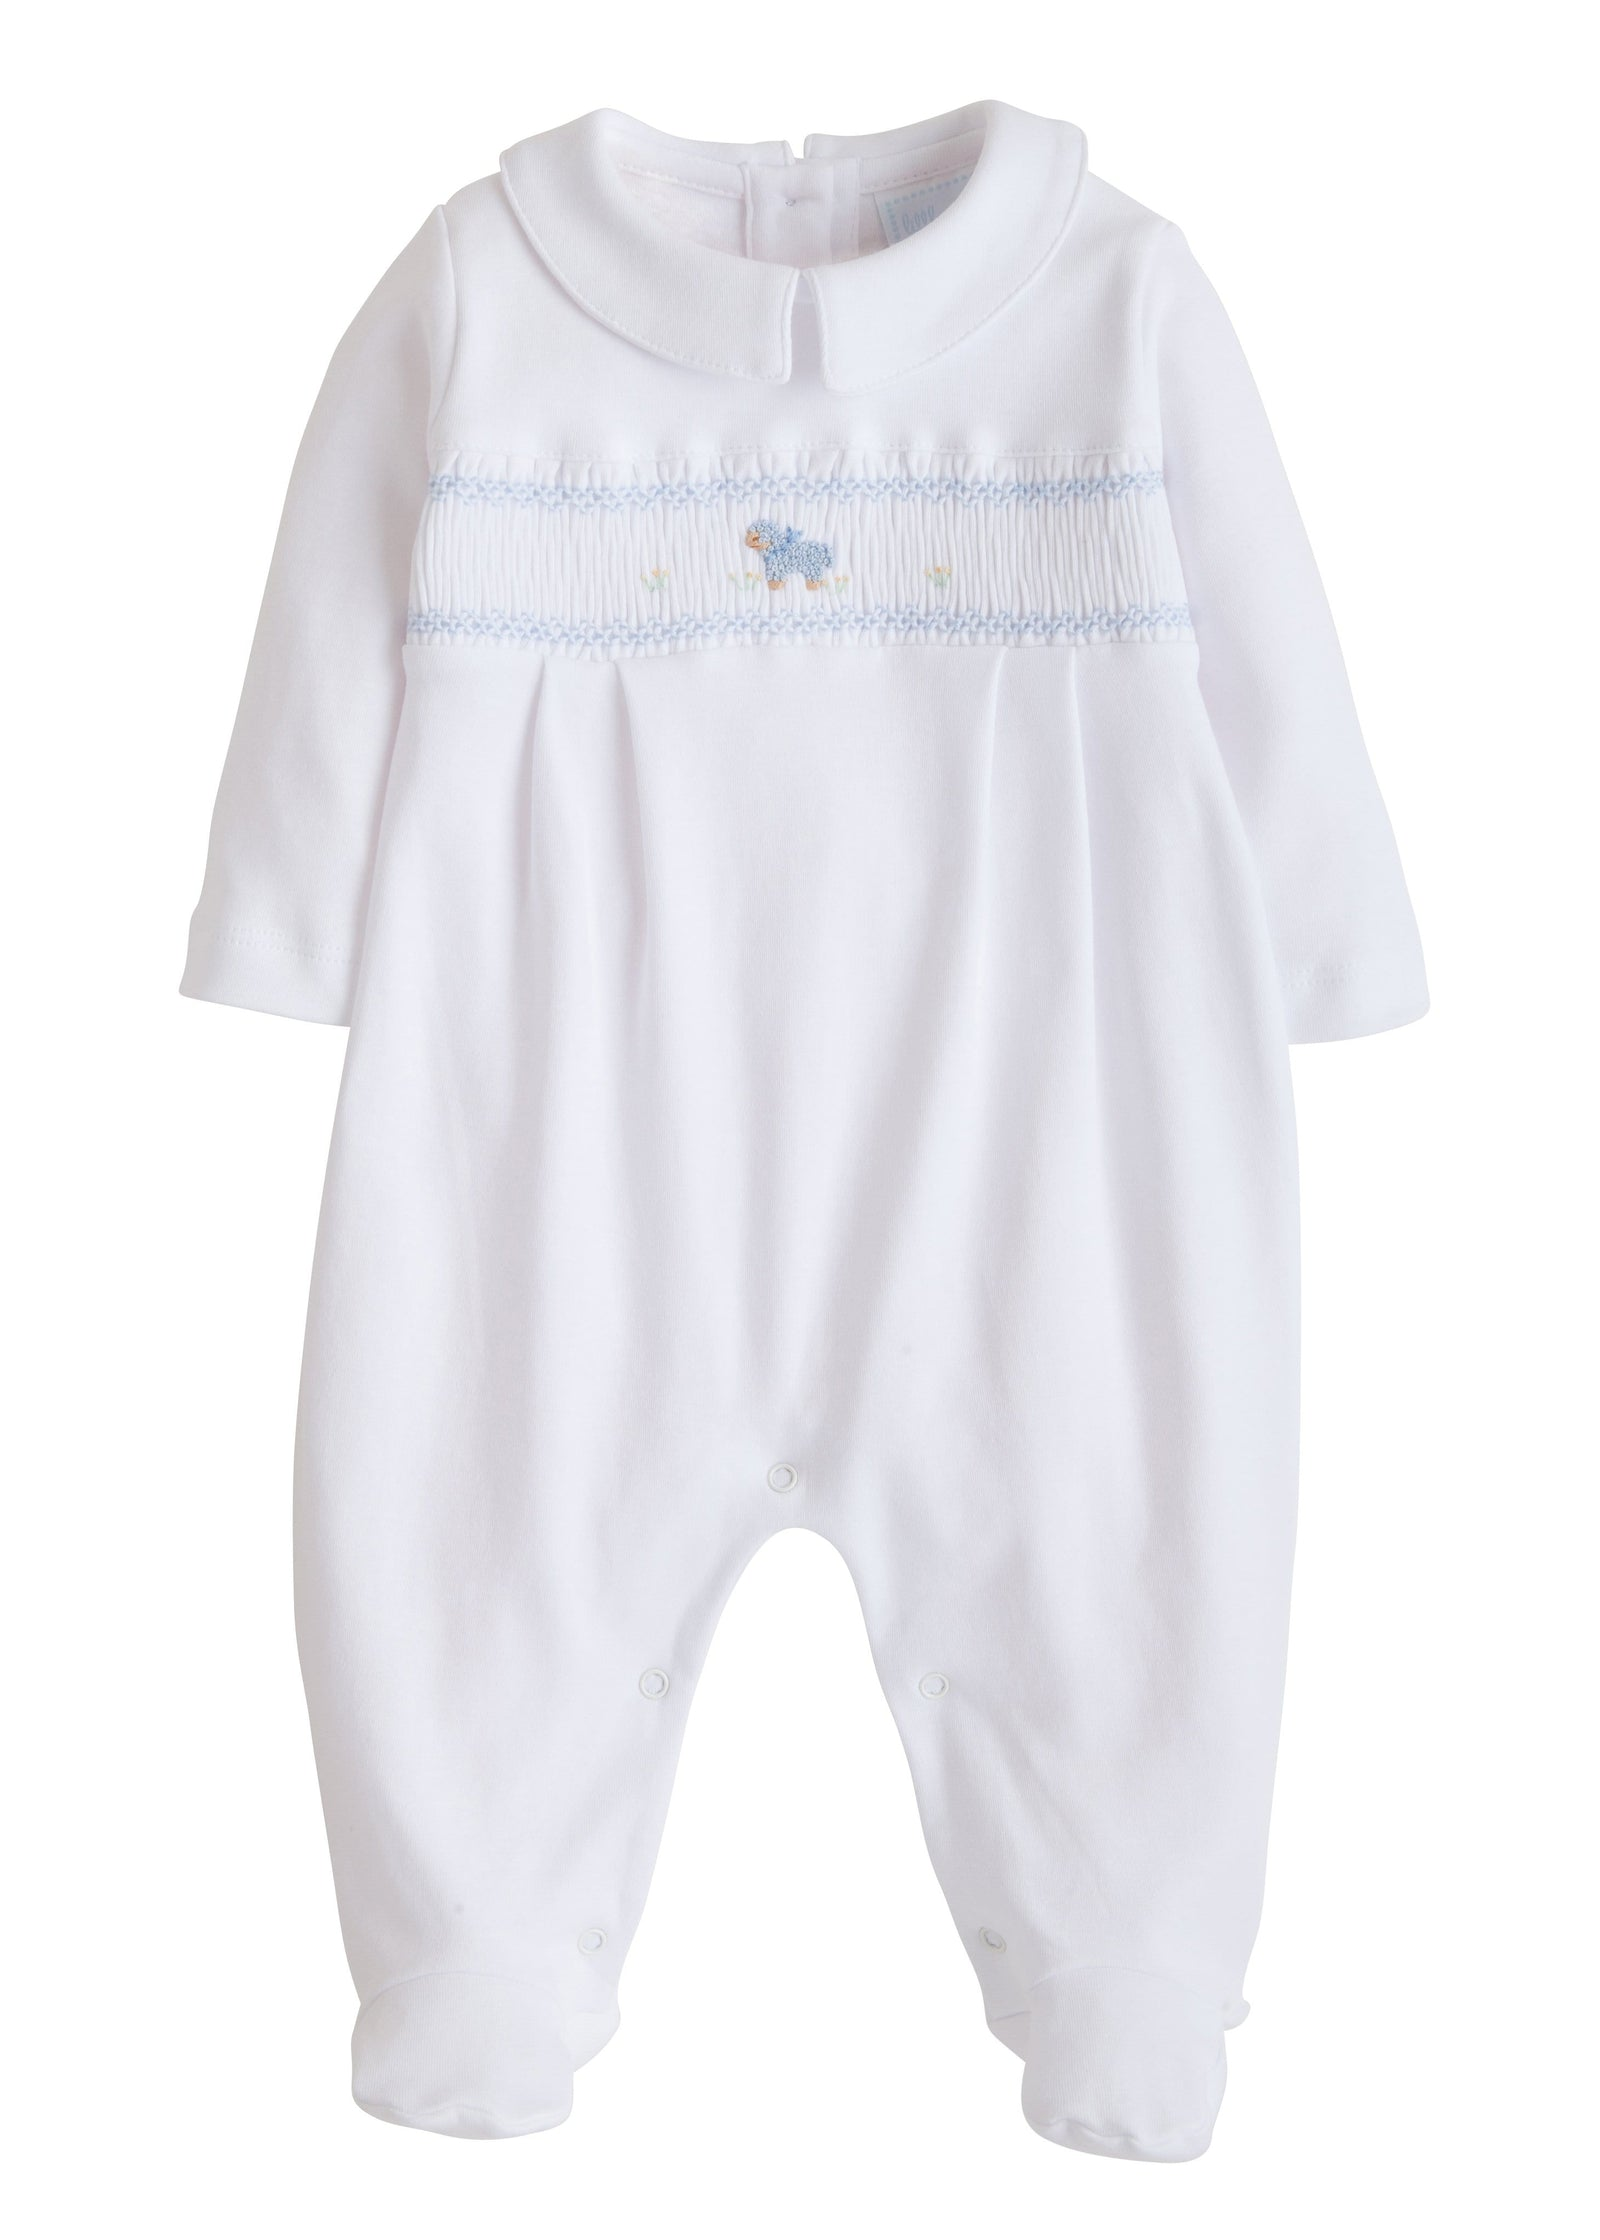 75a5237bc64a Classic Baby Boy Clothing - Little English